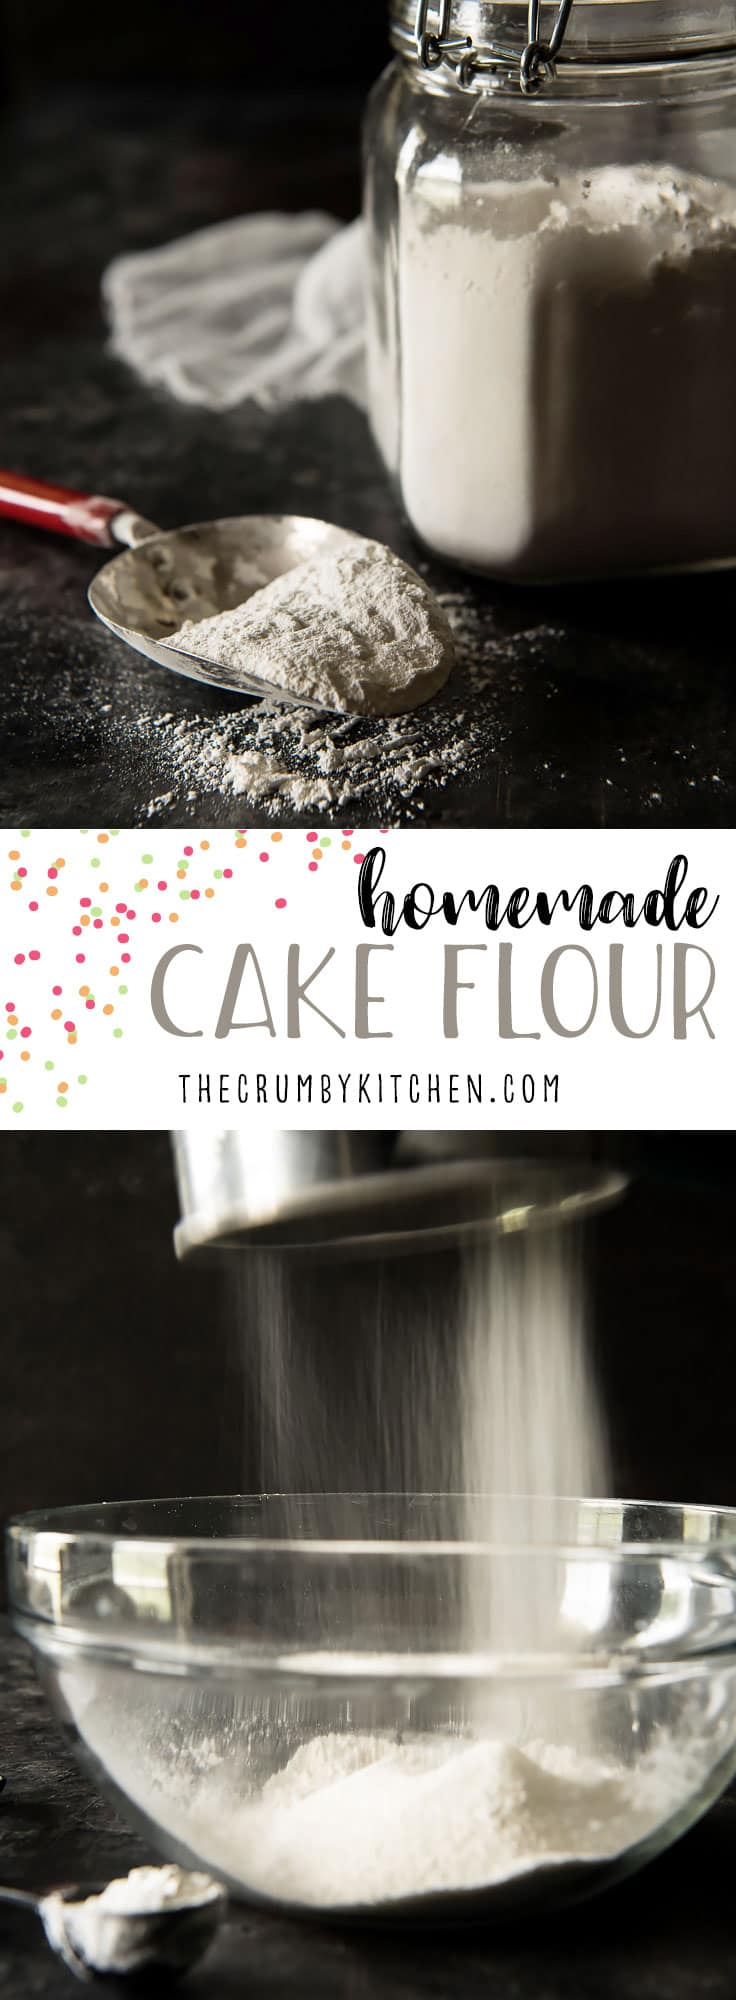 Homemade Cake Flour Substitute The Crumby Kitchen